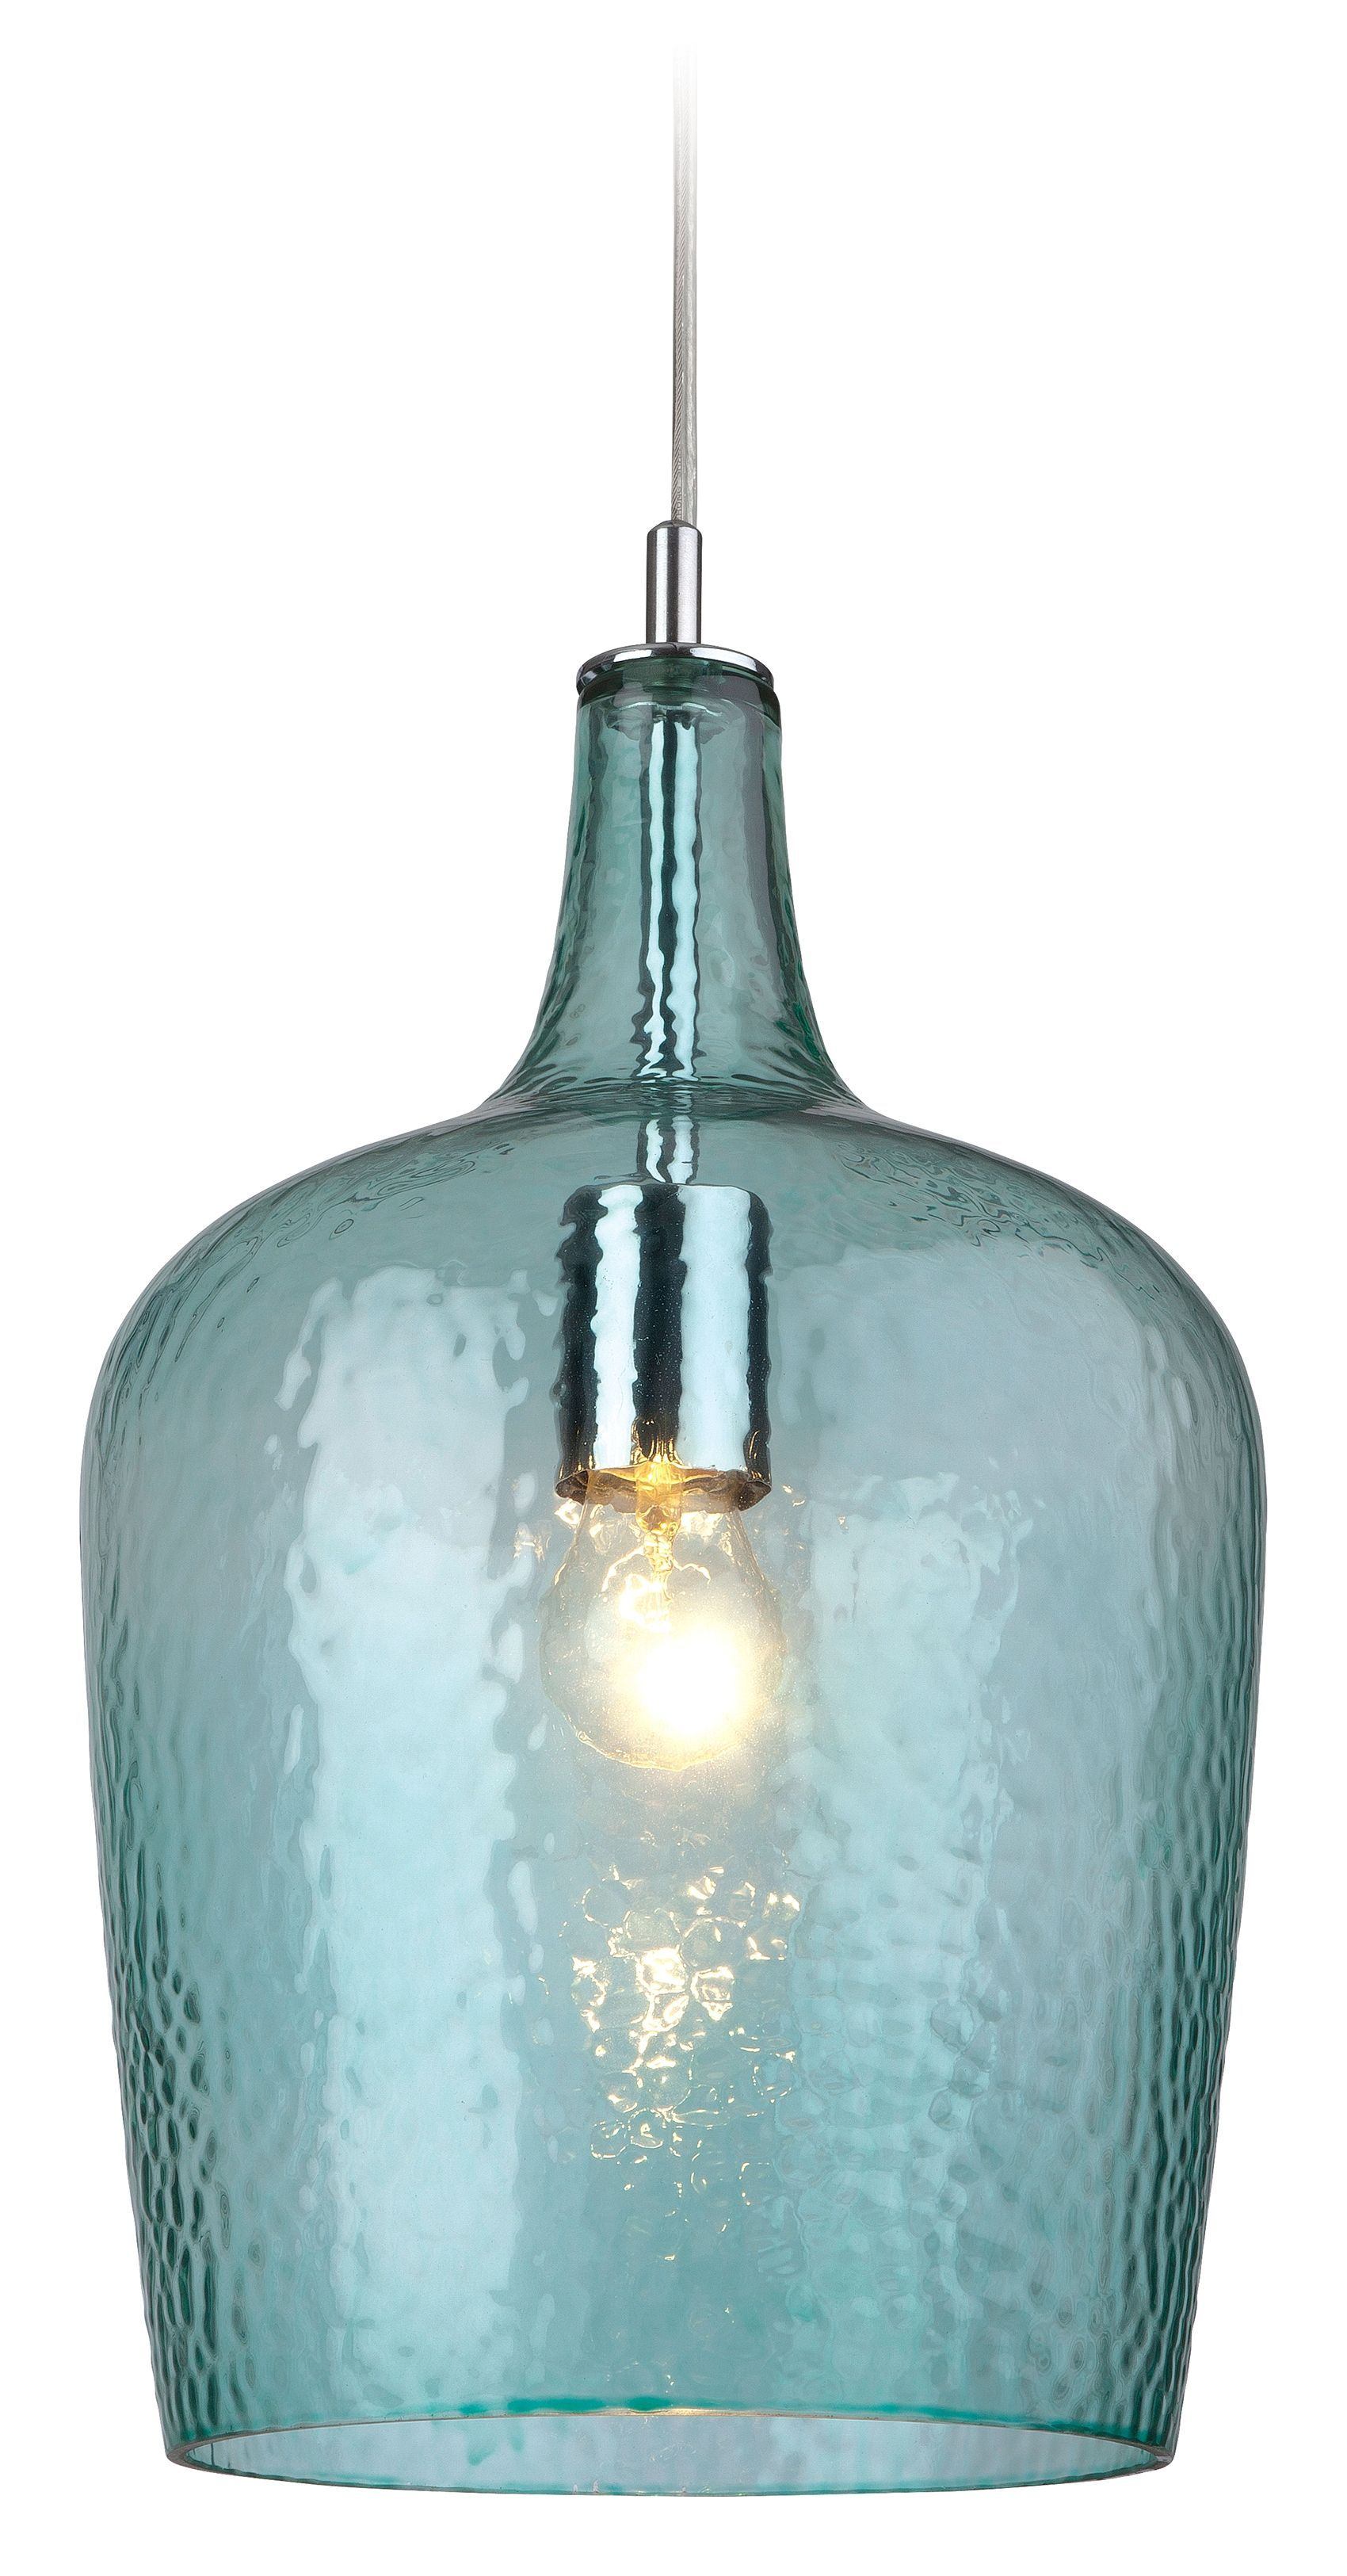 glass bubble pendant light heavy patterned